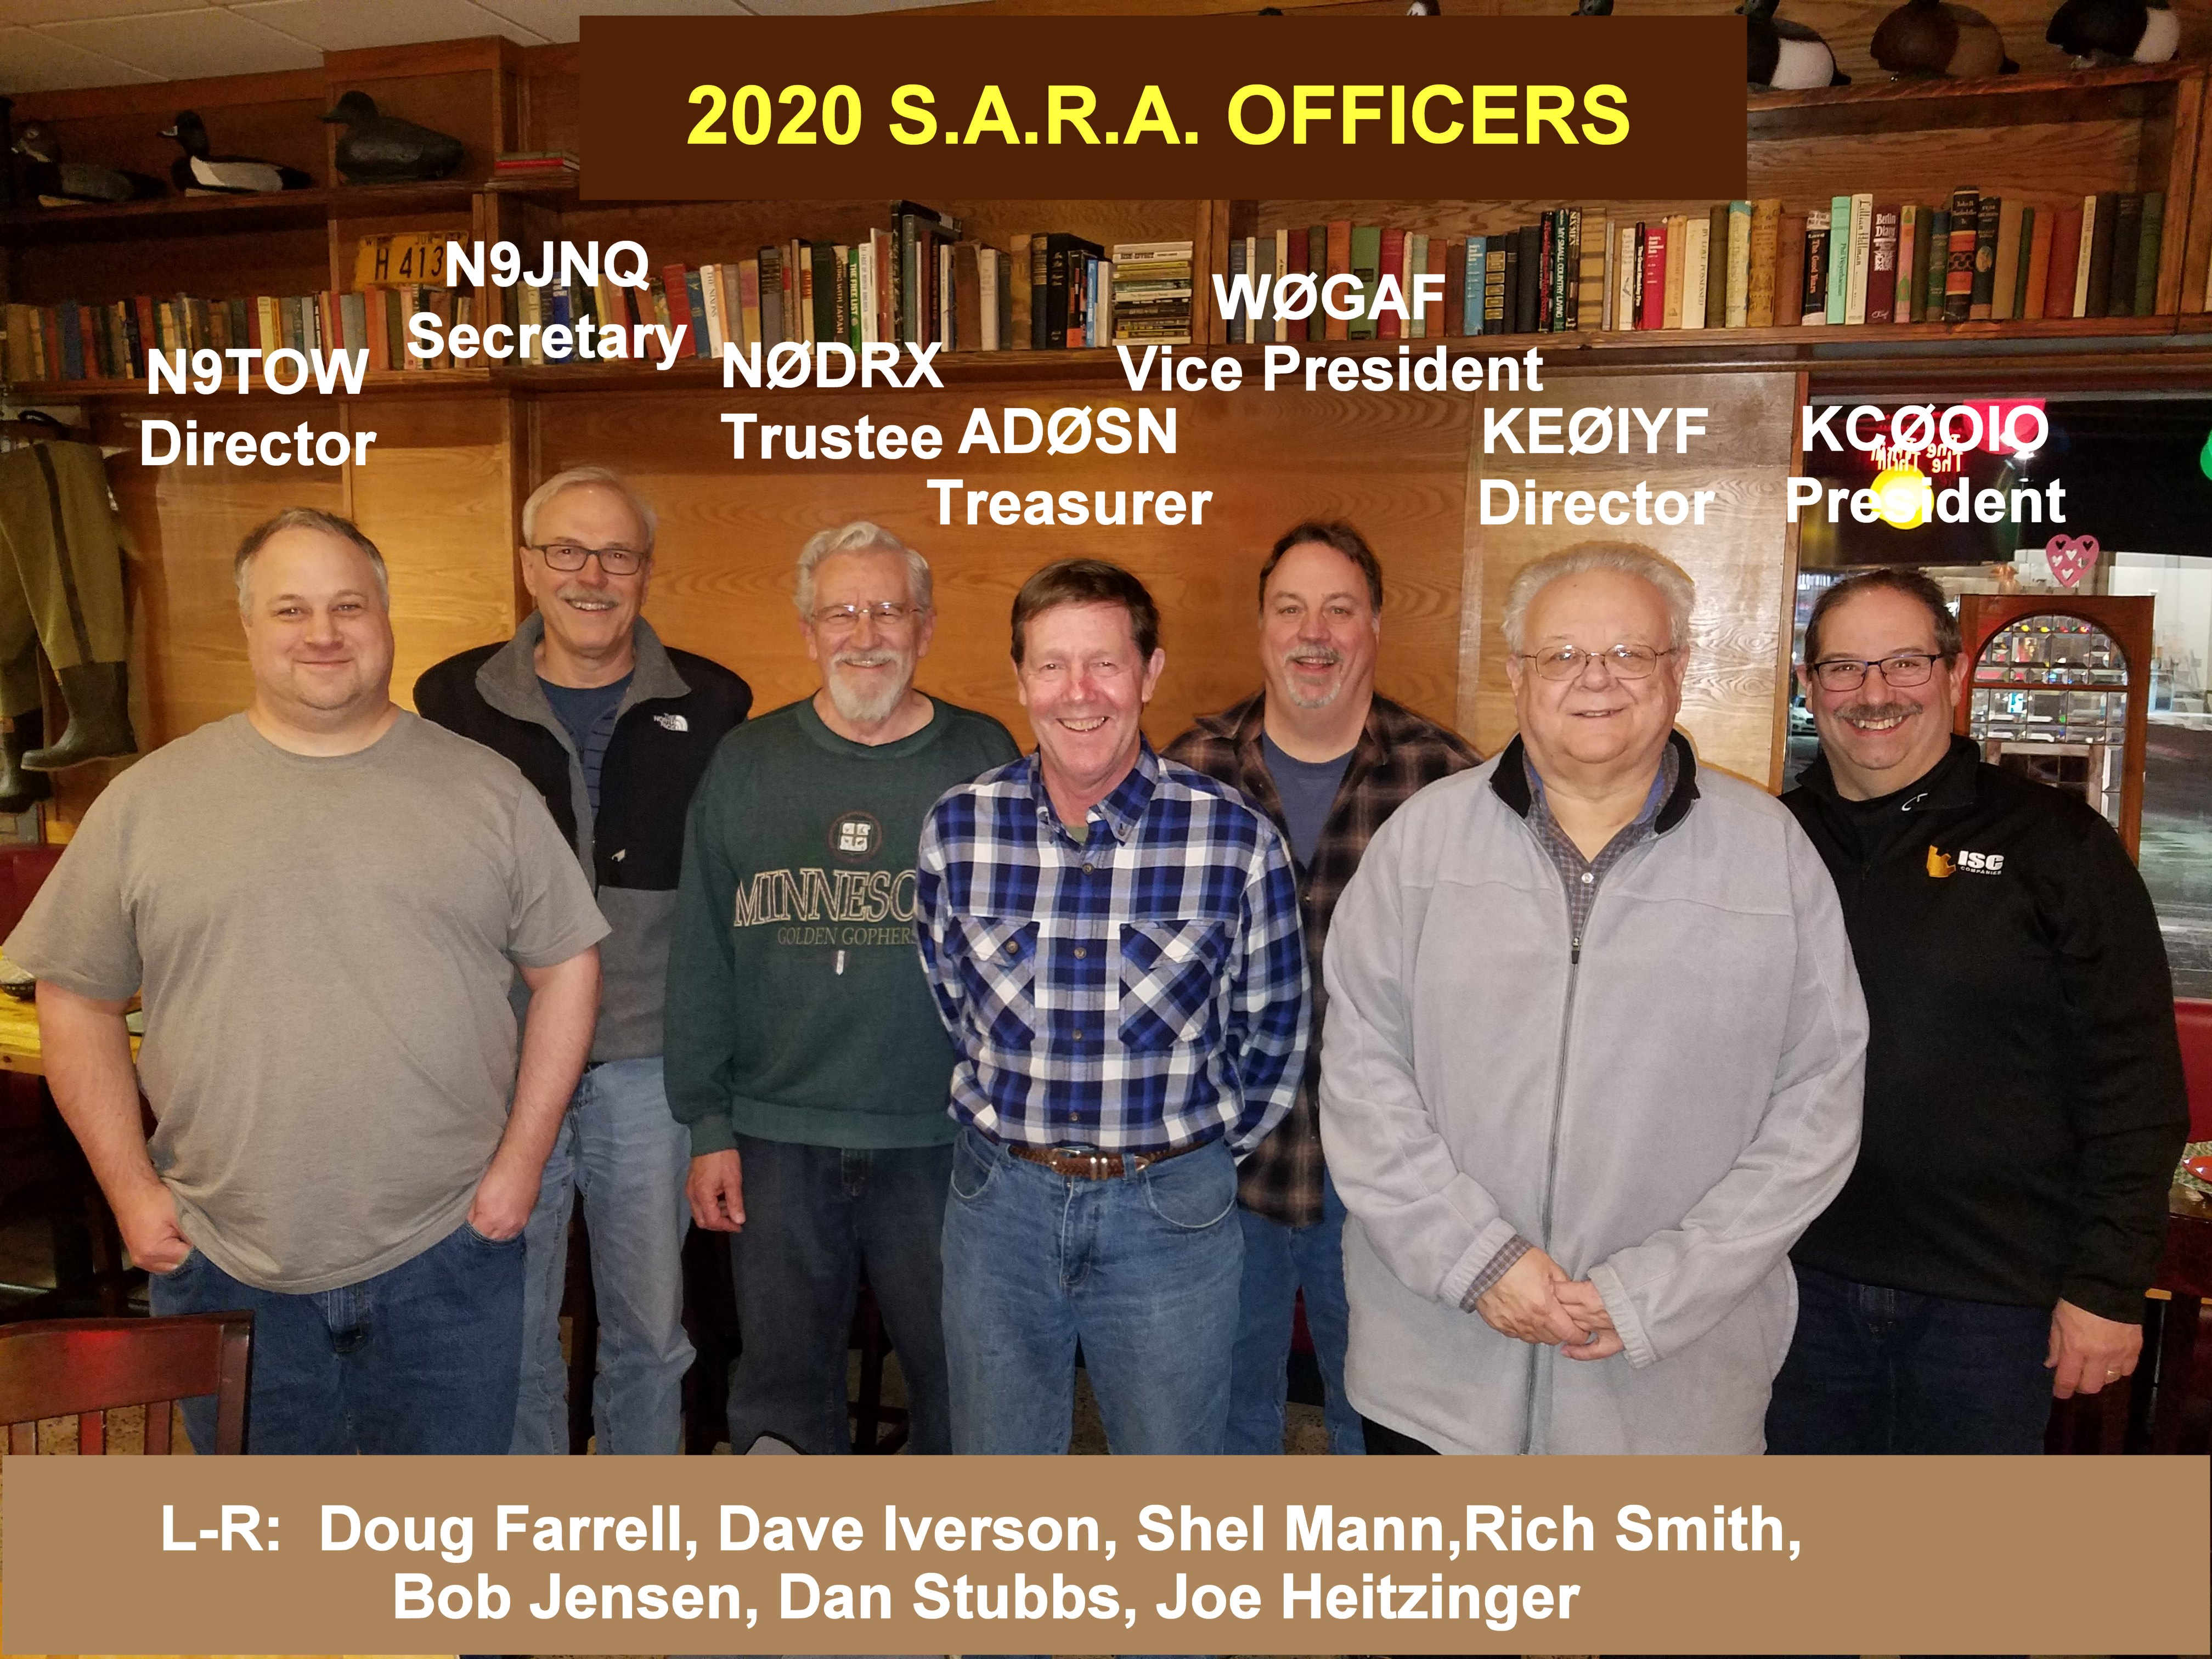 2020 S.A.R.A. EXECUTIVE OFFICERS